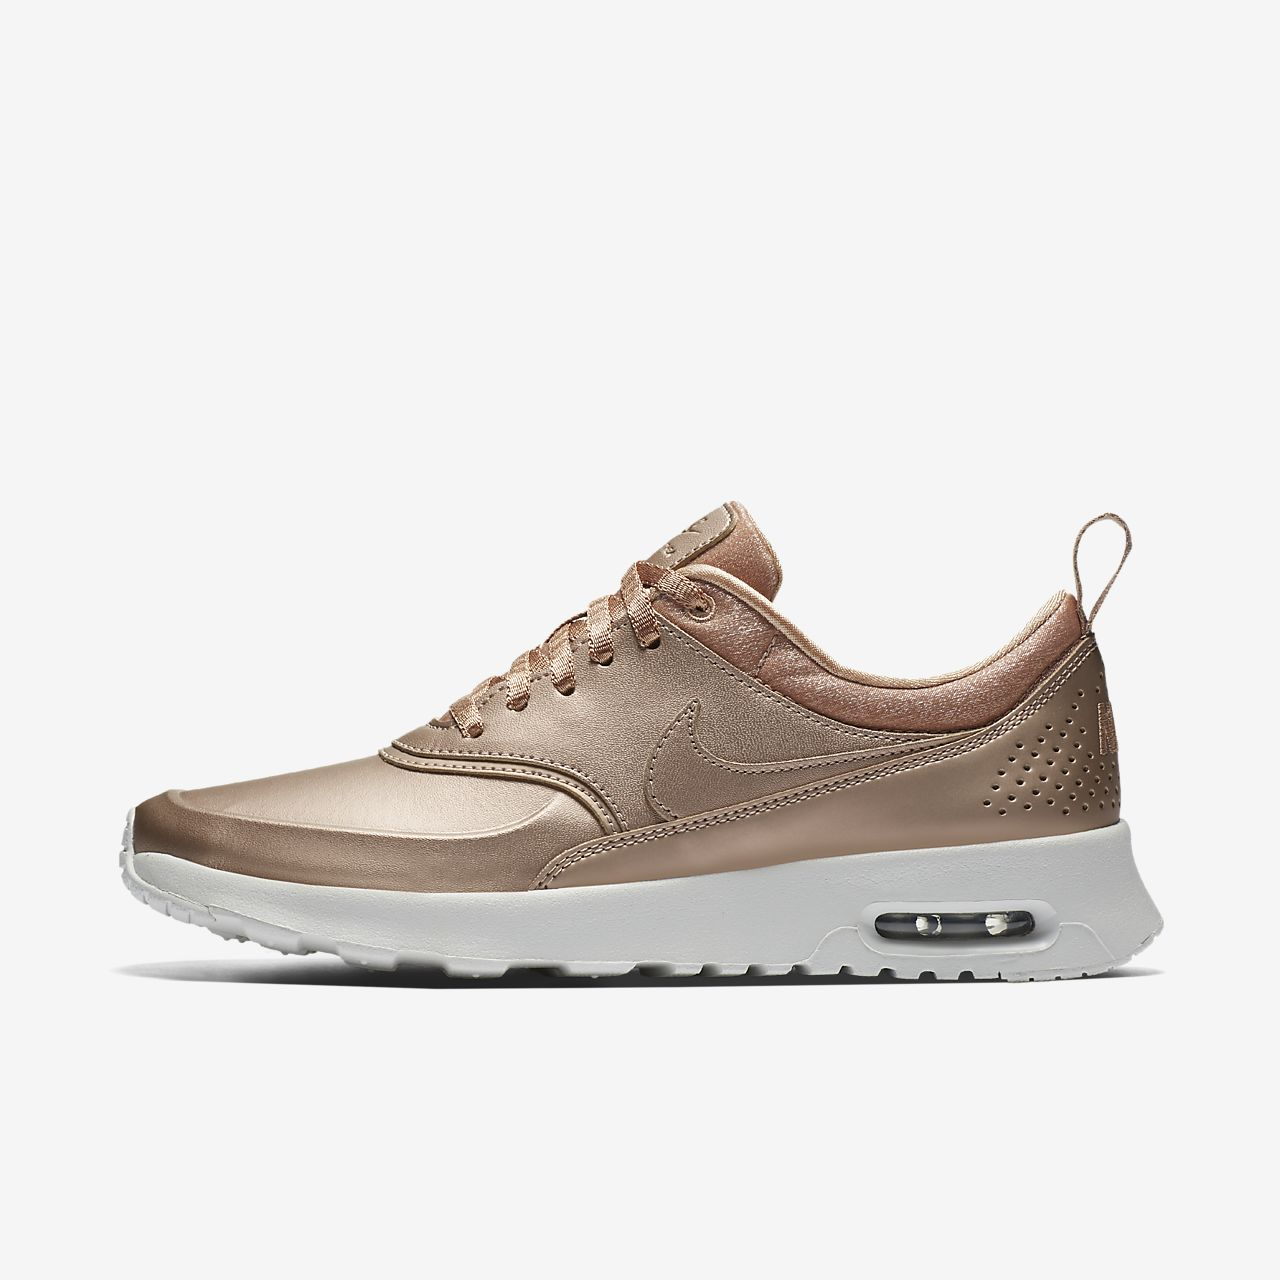 differently 51640 4e857 air max thea femme beige